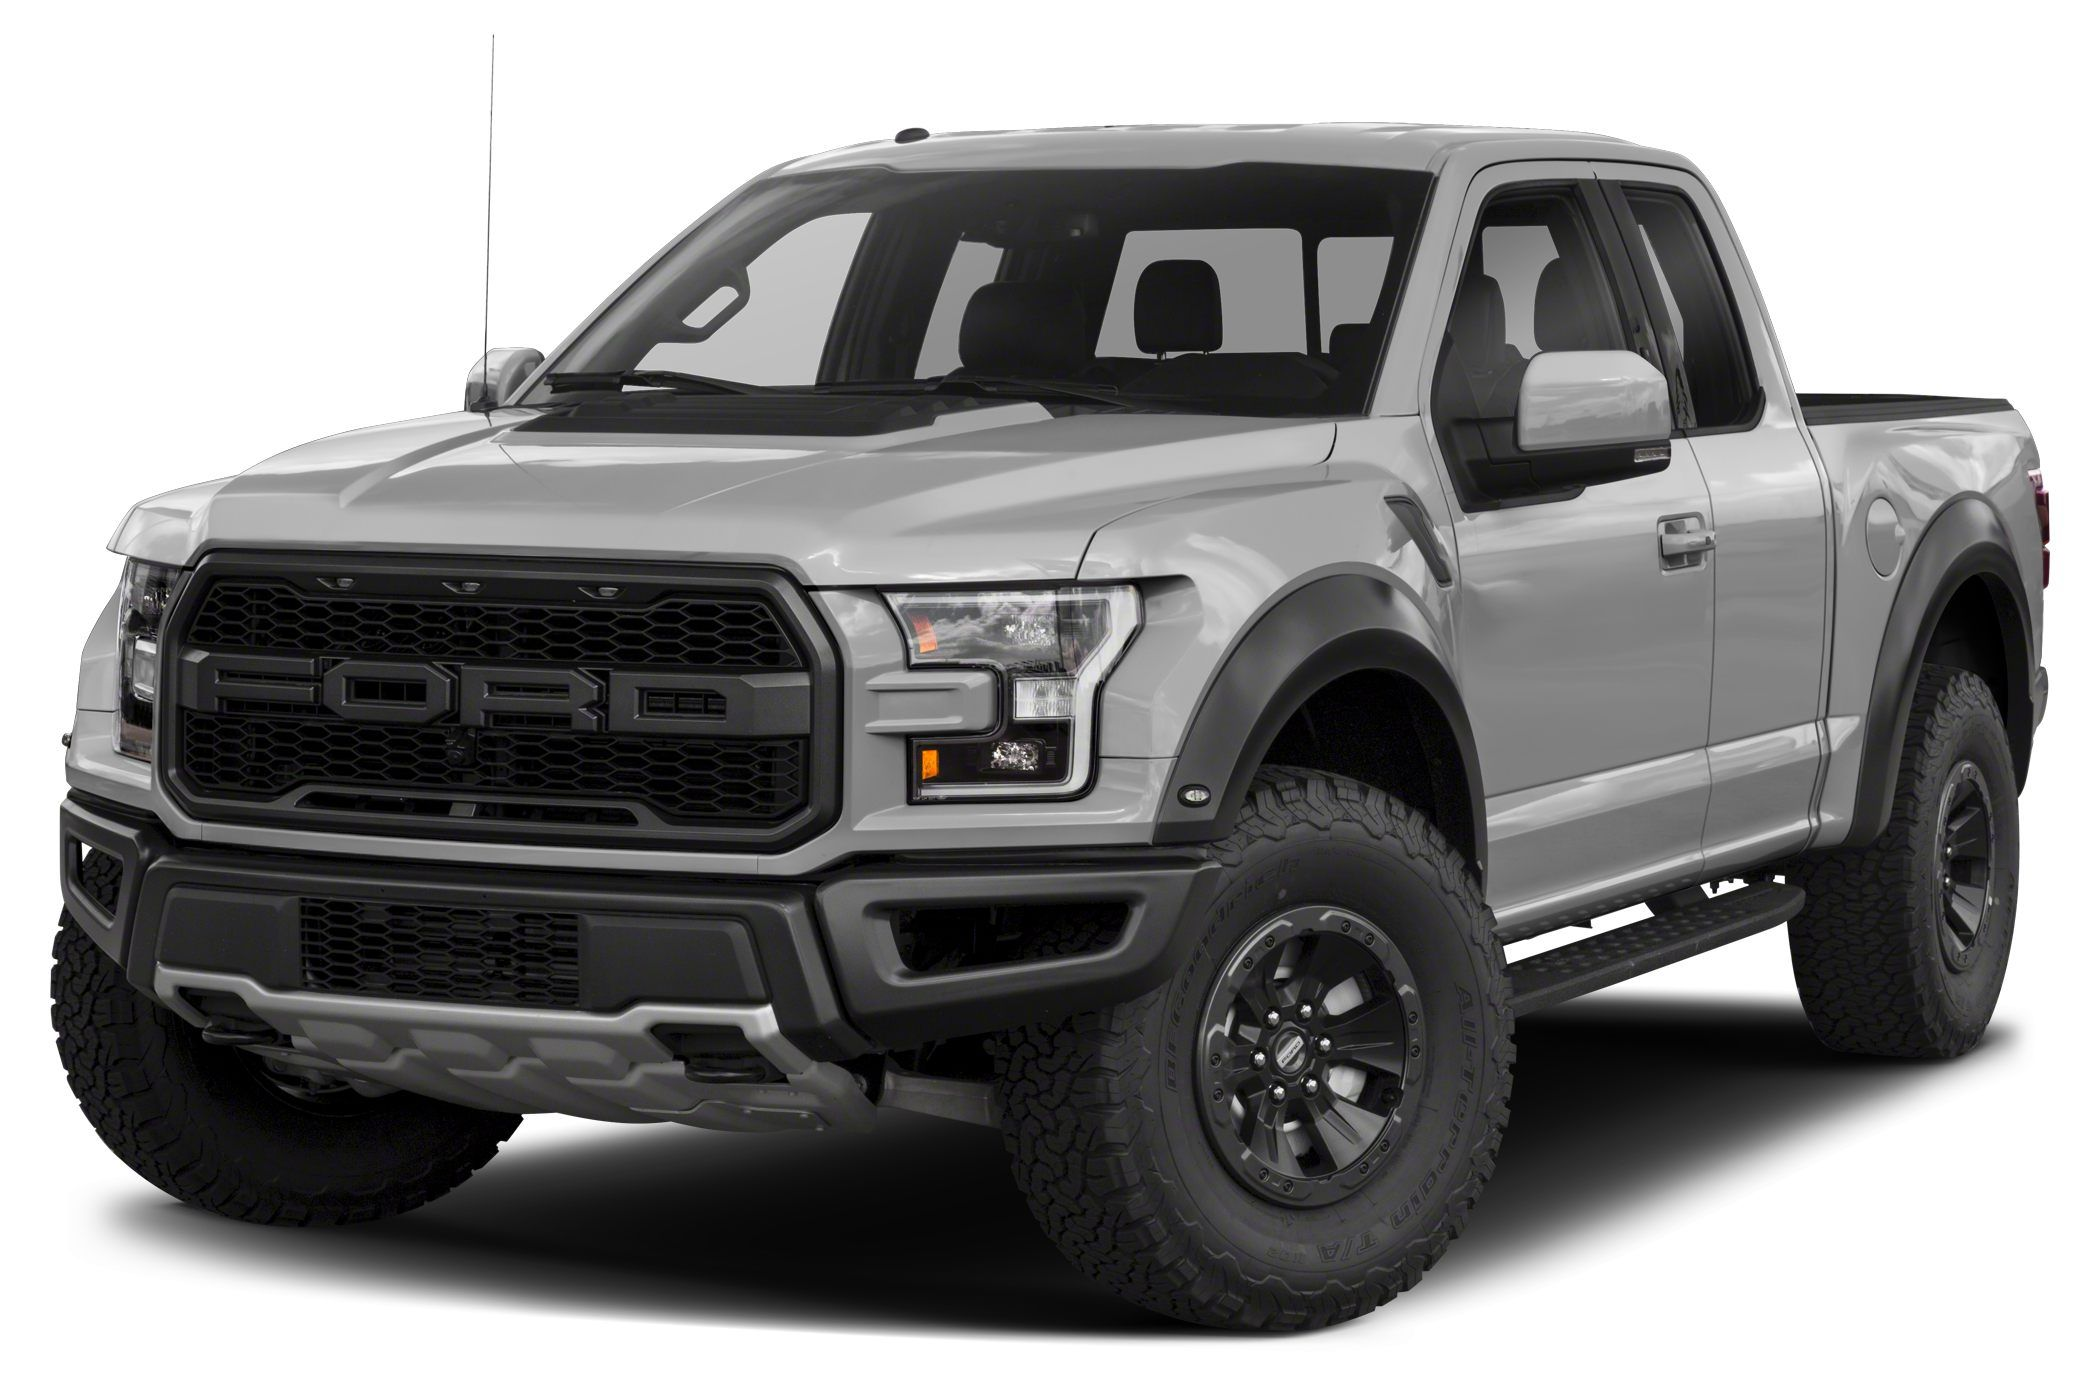 Ford Raptor Supercab Bing Ford Raptor Ford Ranger 2019 Ford Ranger